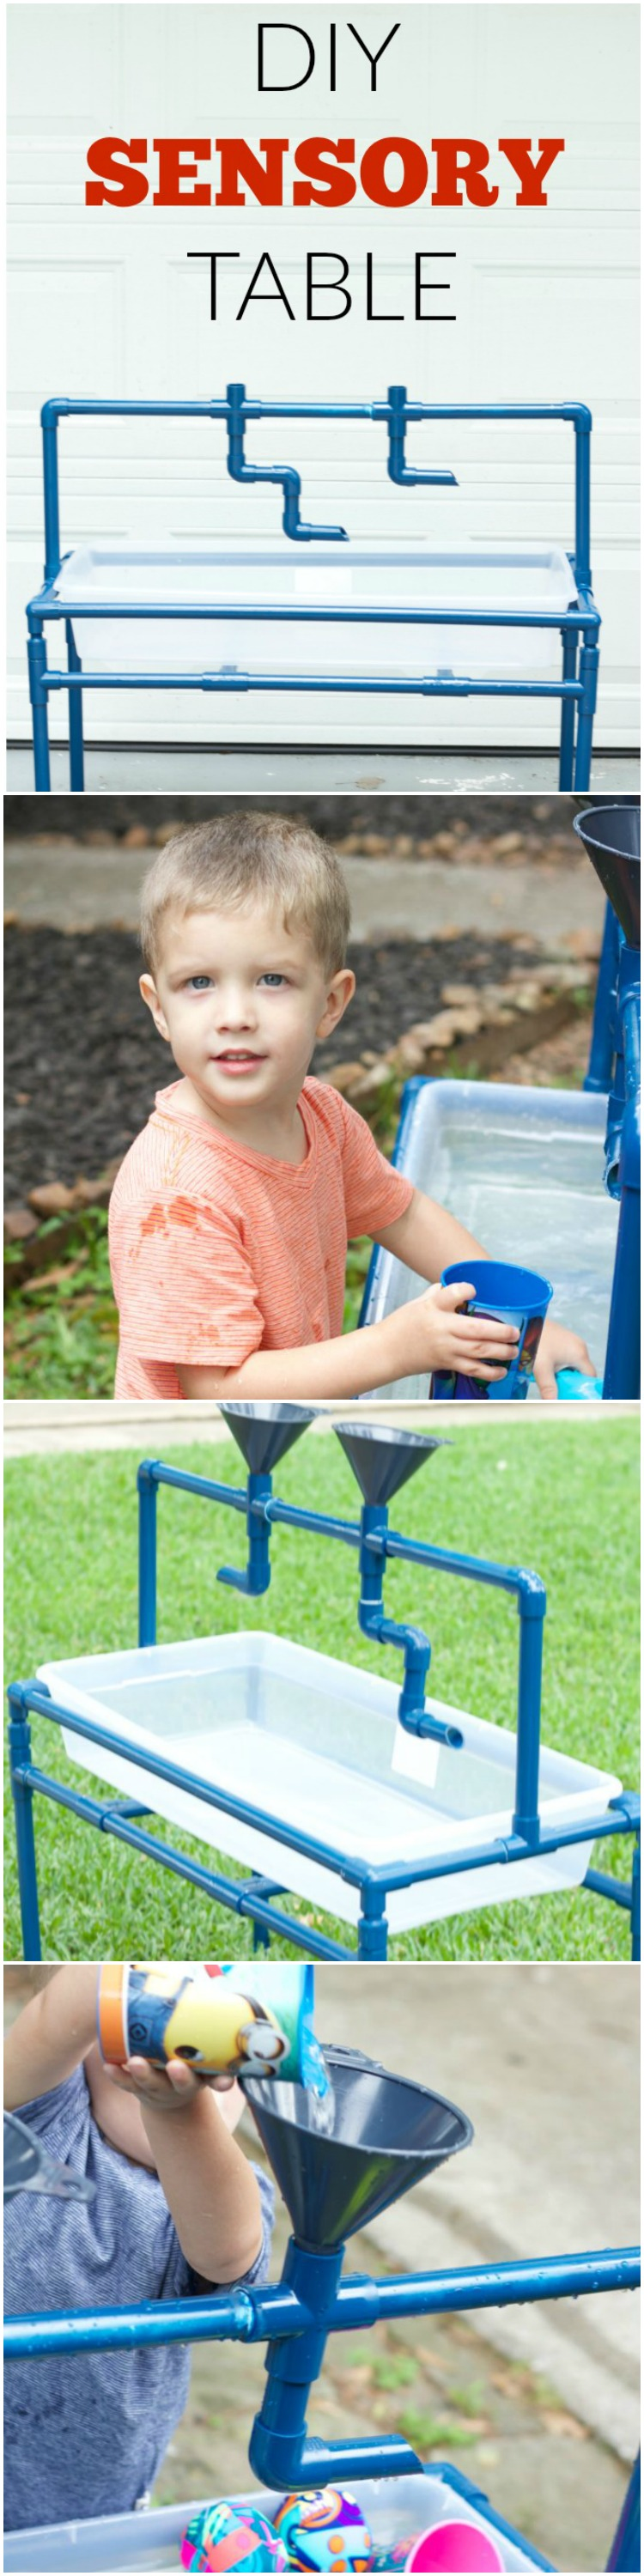 This is so fun! What a fun idea for the summer. This DIY Sensory Table looks so easy to make!